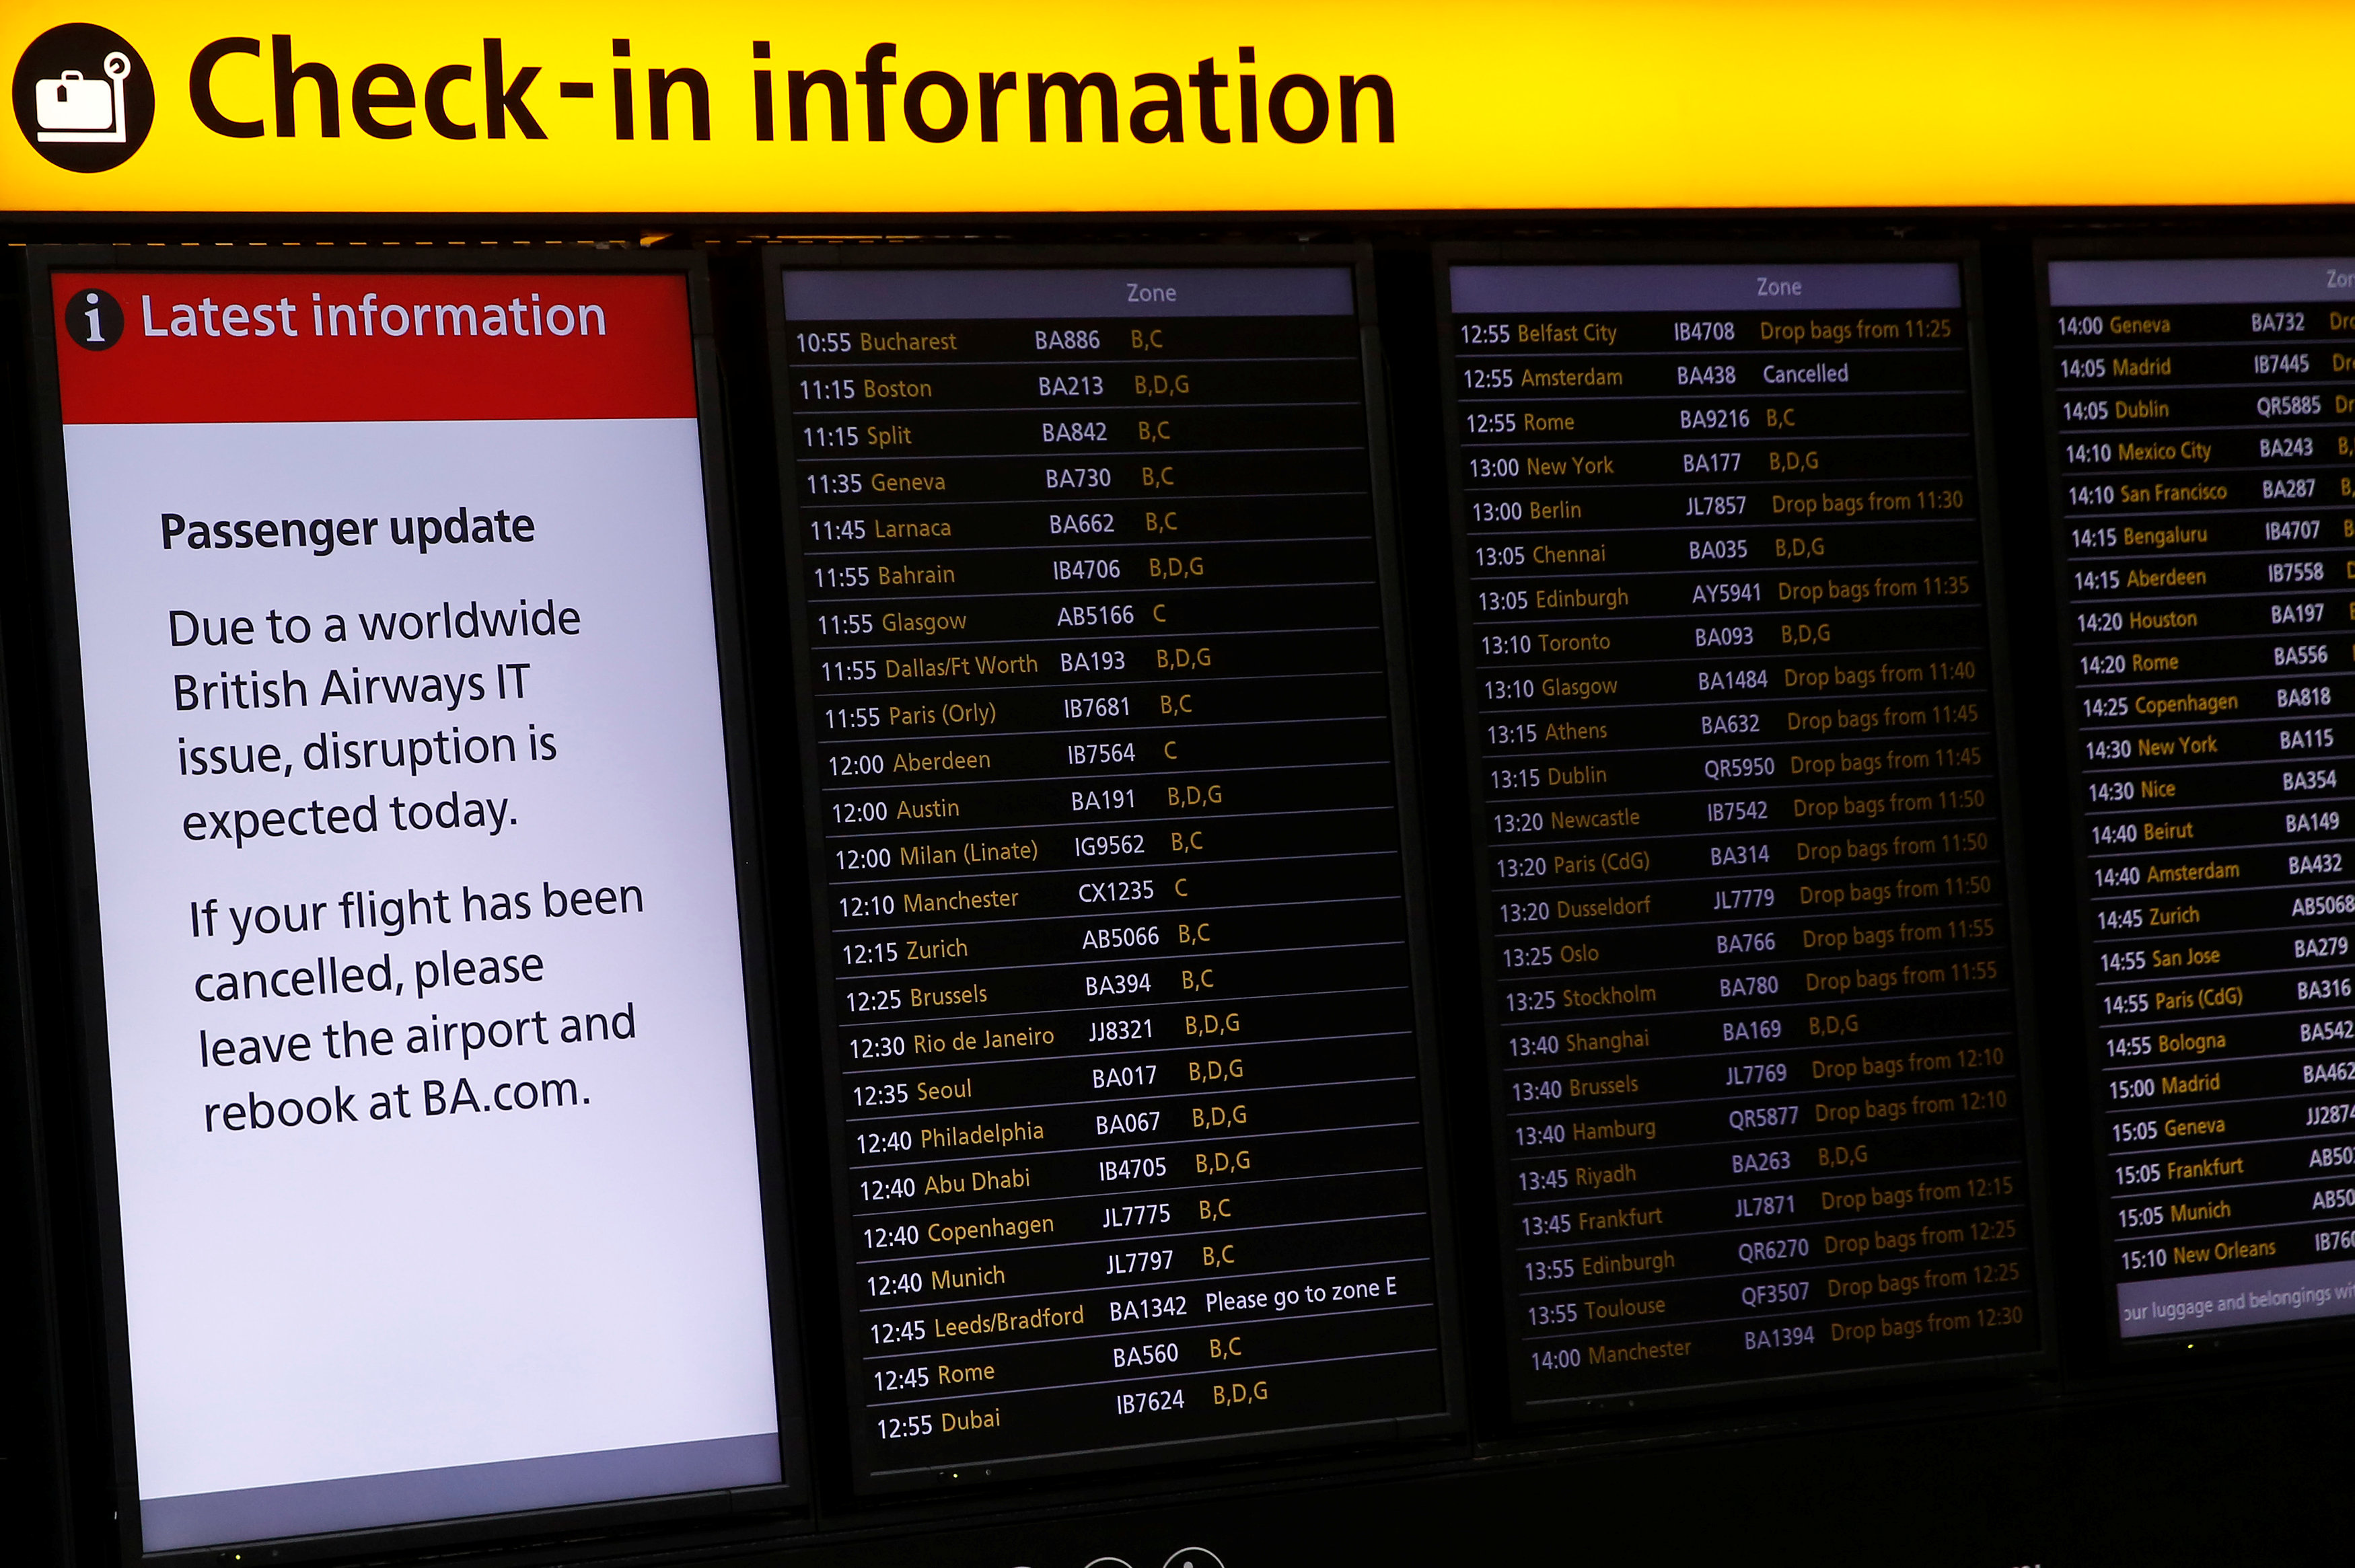 Check-in information boards are displayed at Heathrow Terminal 5 in London, Britain on May 29, 2017. (REUTERS/Stefan Wermuth)